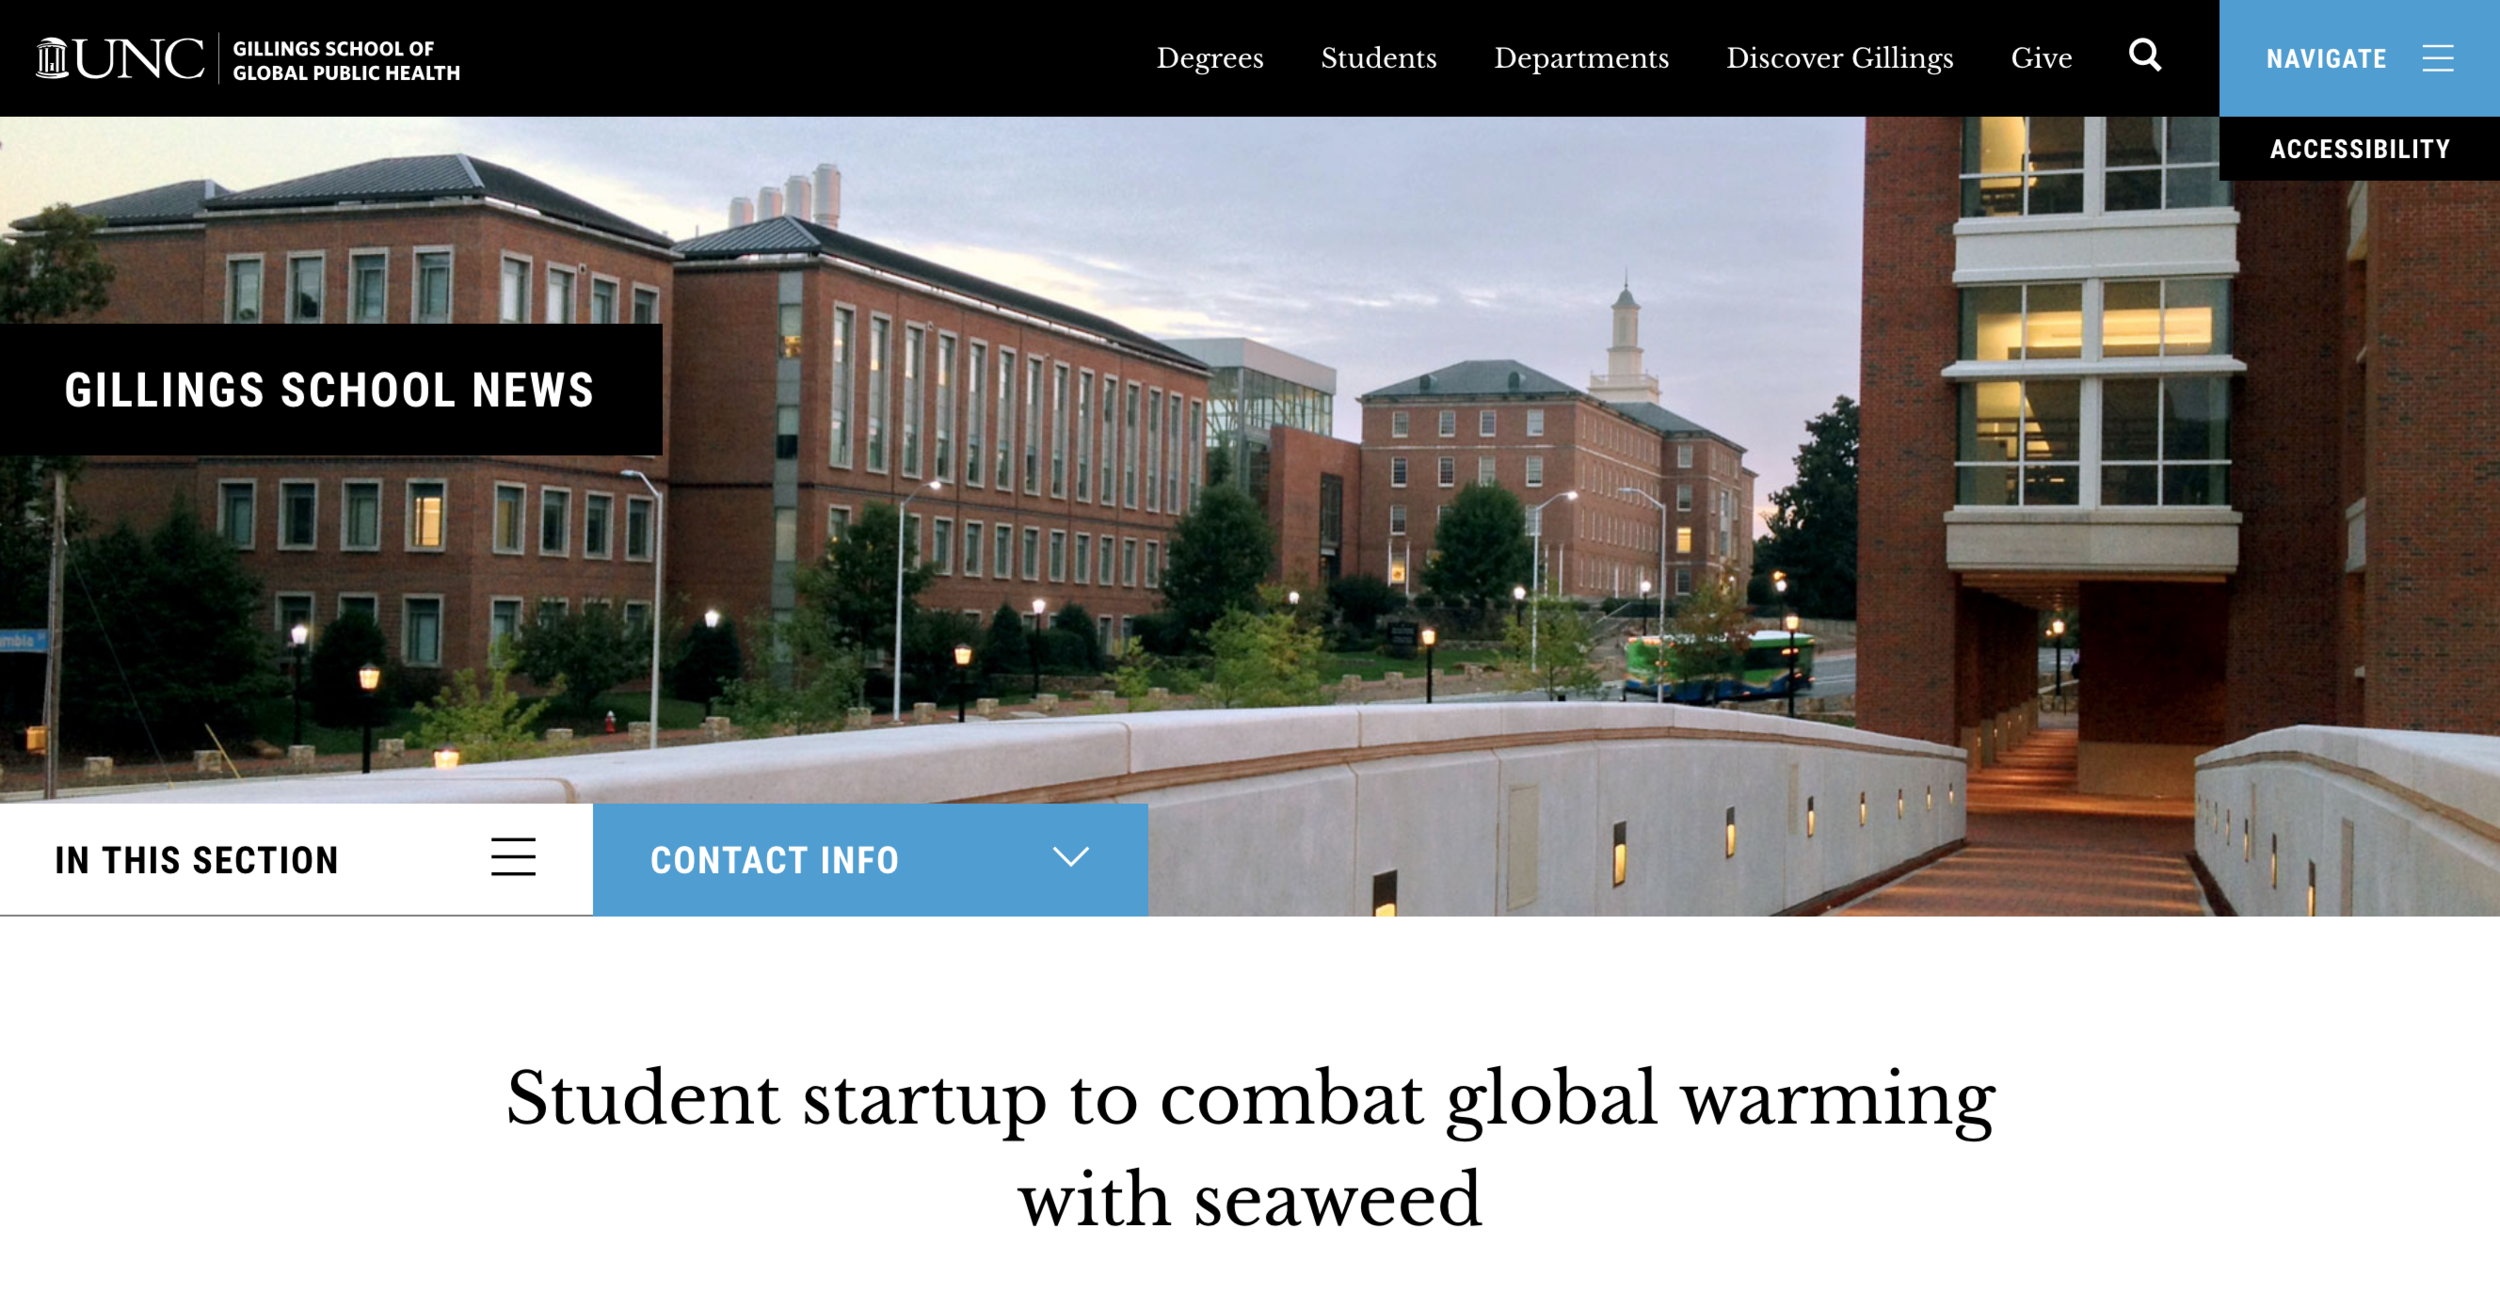 GILLINGS SCHOOL OF PUBLIC HEALTH   Phyta is honored to have been recognized by the  Gillings School of Global Public Health  for our work with the Hult Prize and vision to commercialize sustainable seaweed cultivation.